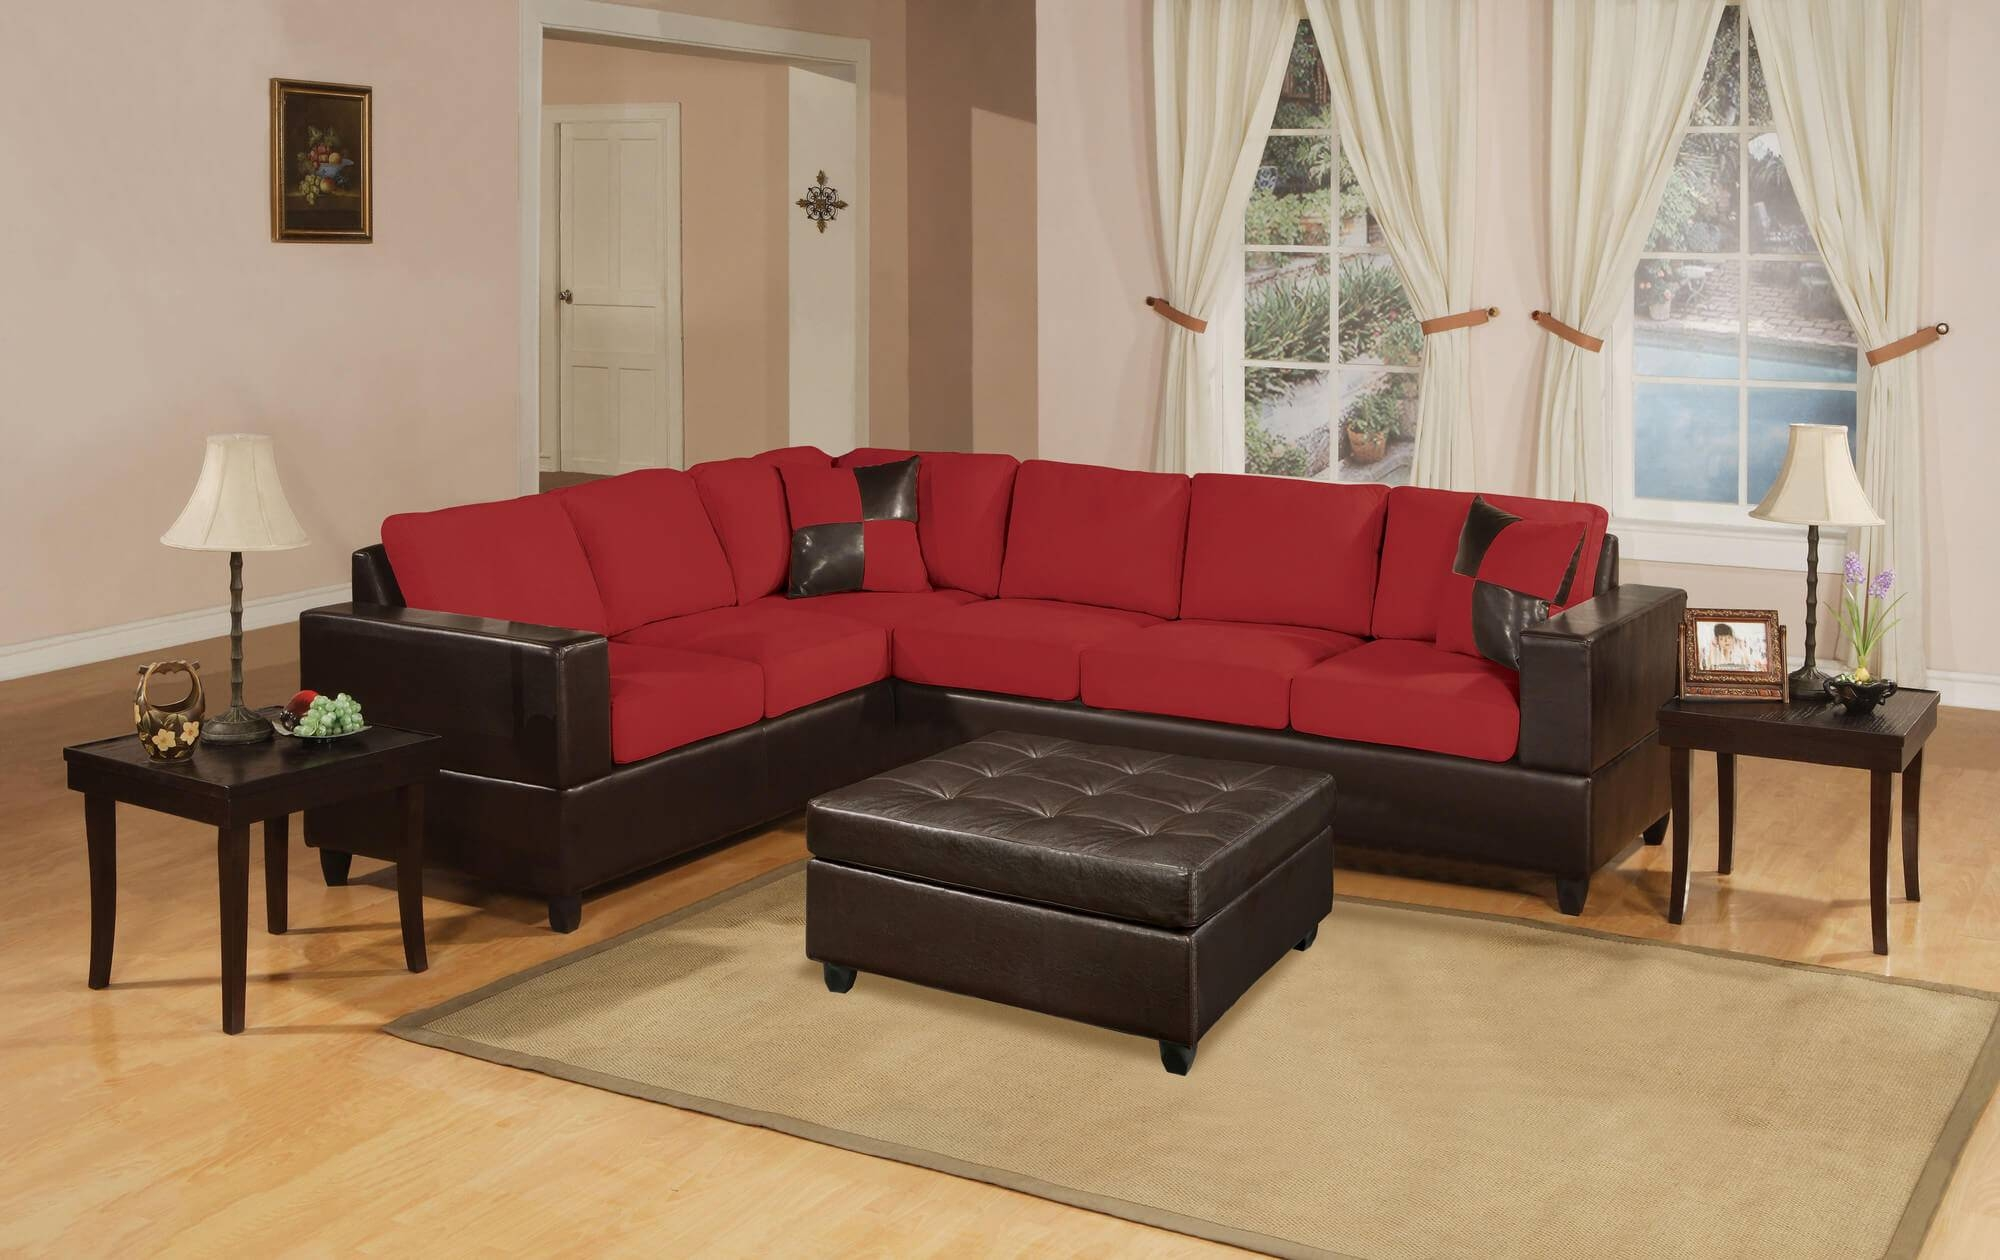 Furniture: Comfortable Deep Seat Sectional For Your Living Room throughout Comfortable Sectional Sofa (Image 13 of 30)